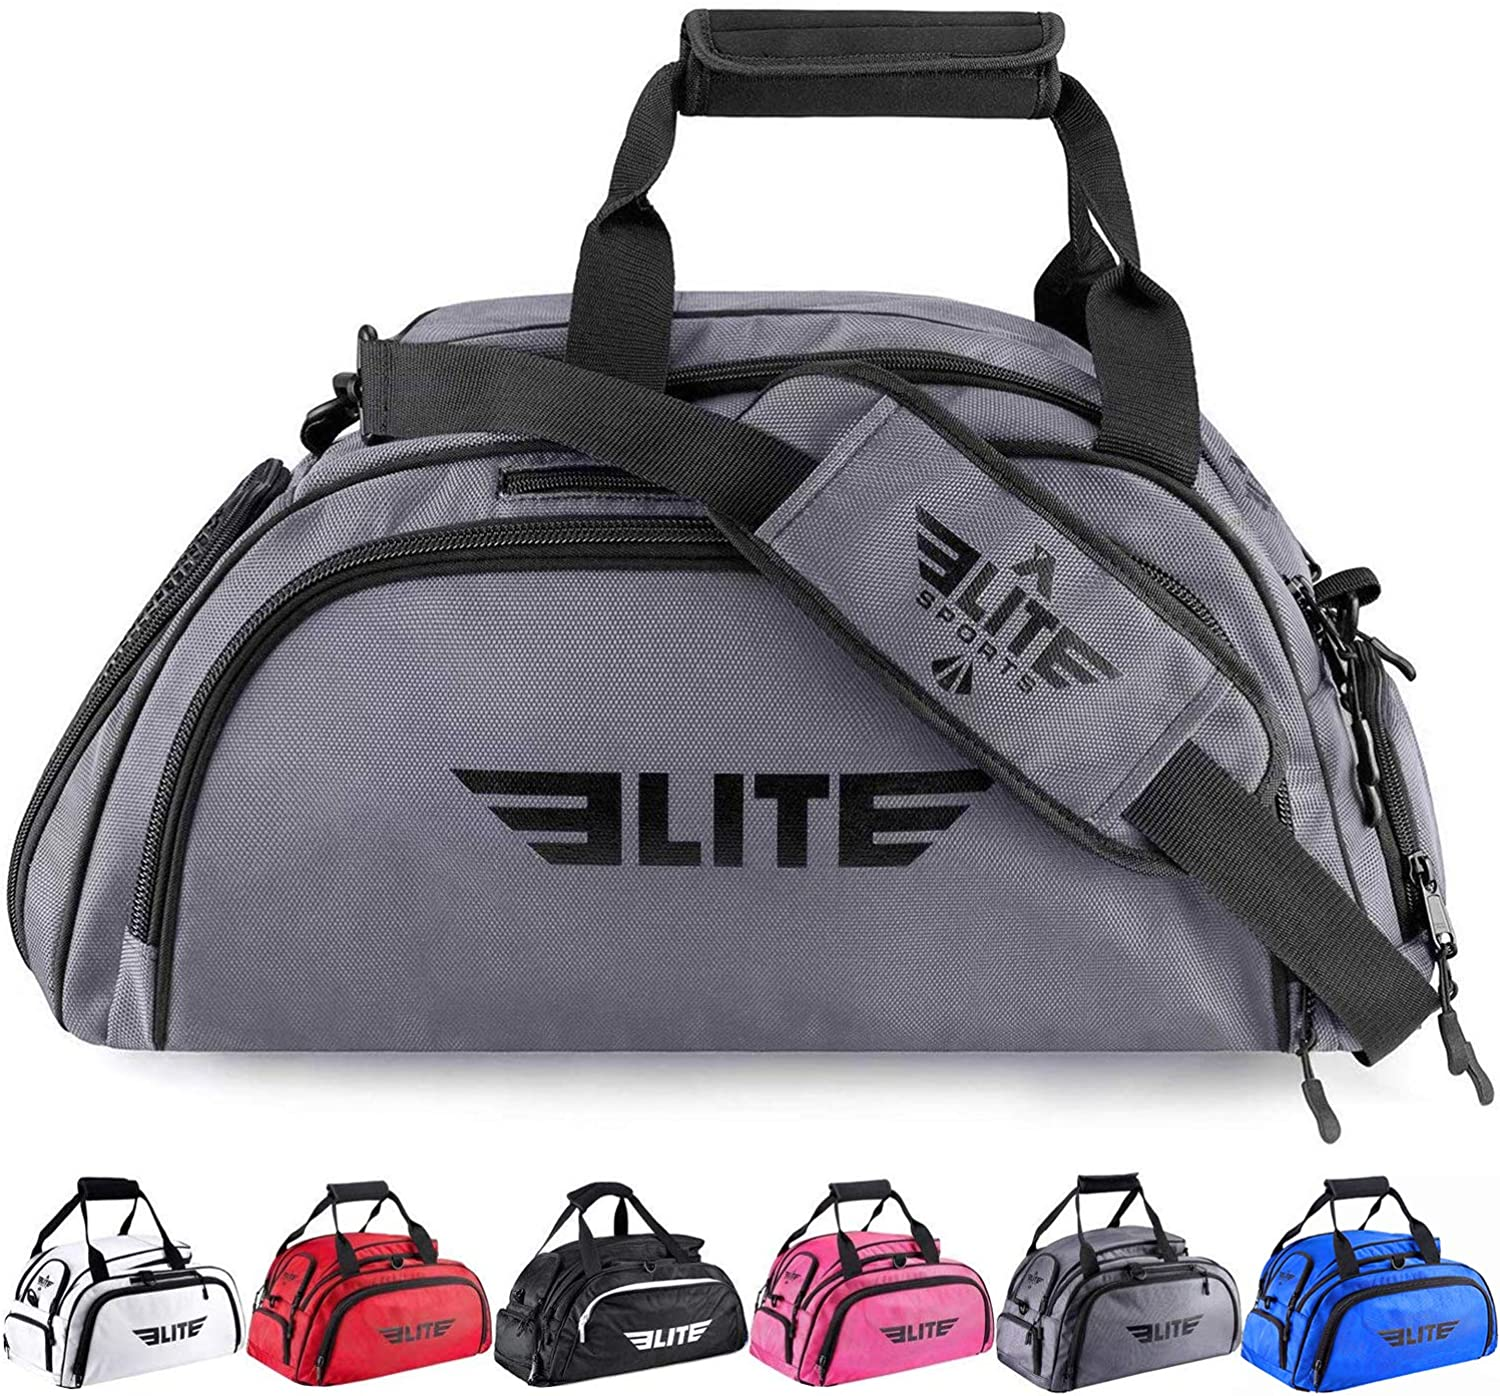 Elite Sports Boxing Gym Duffle Bag for MMA, BJJ, Jiu Jitsu Gear, Duffel Athletic Gym Backpack with Shoes Compartment